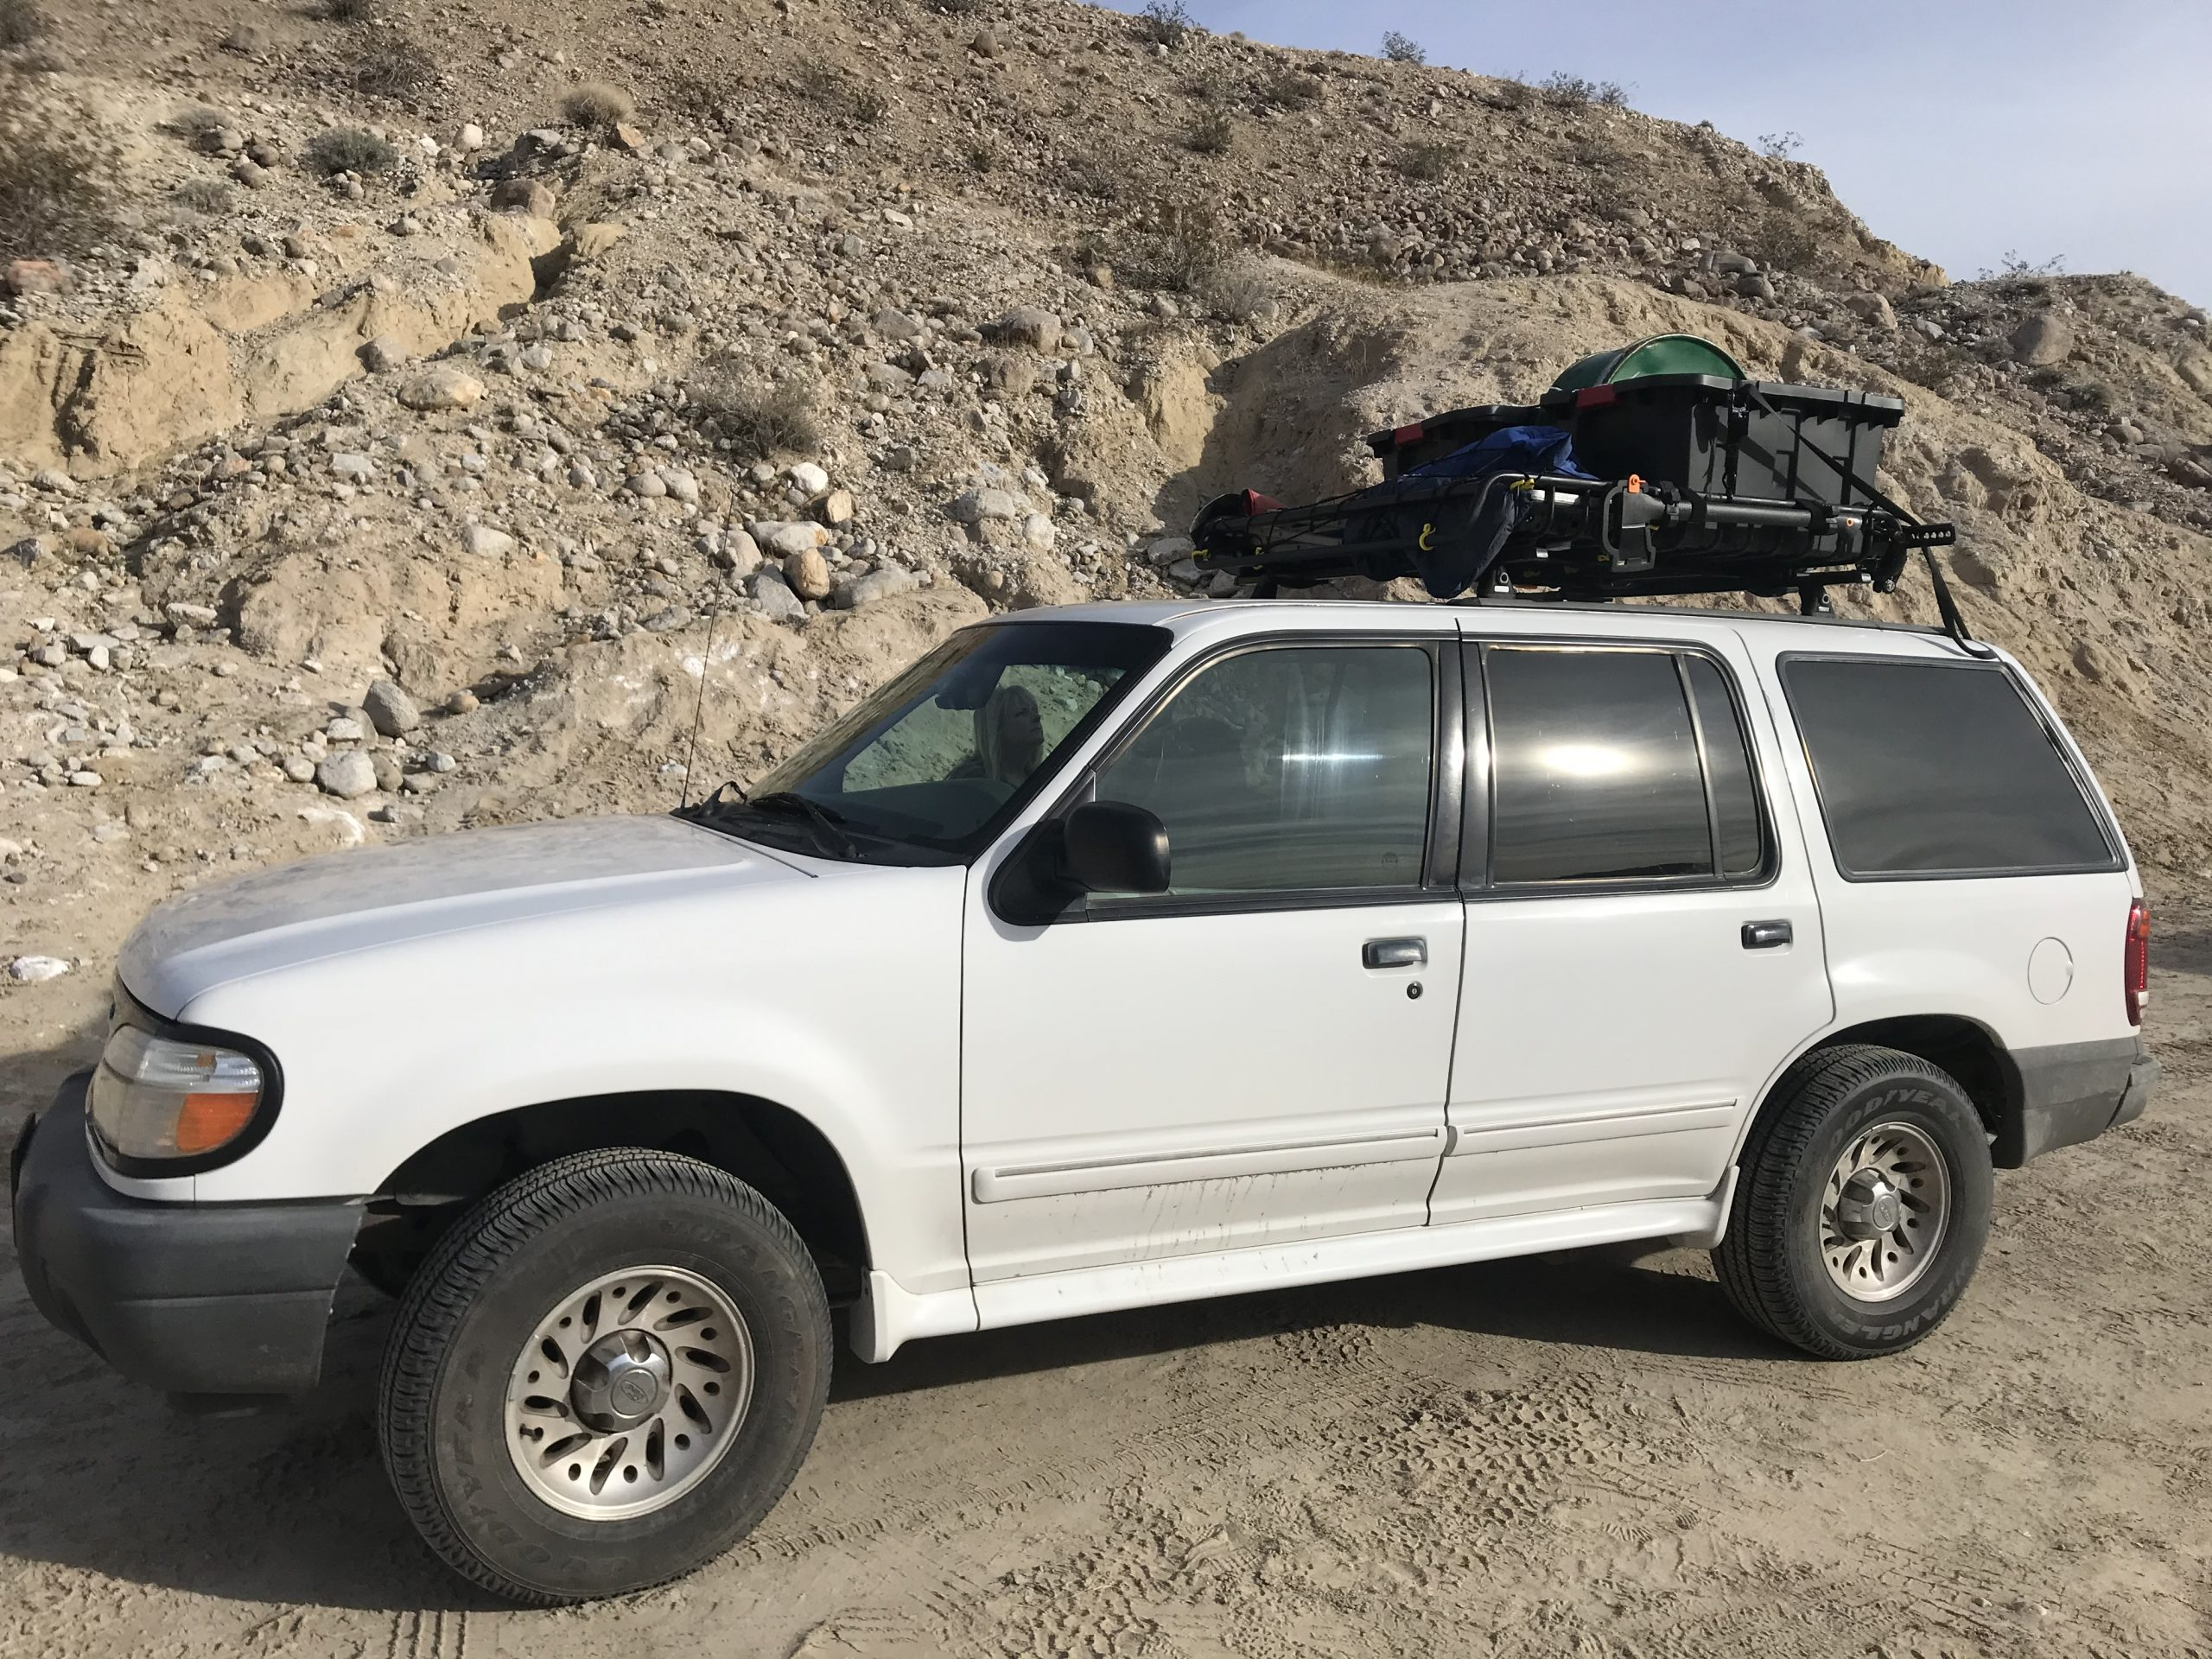 Auction Vehicle The Adventure Travelers